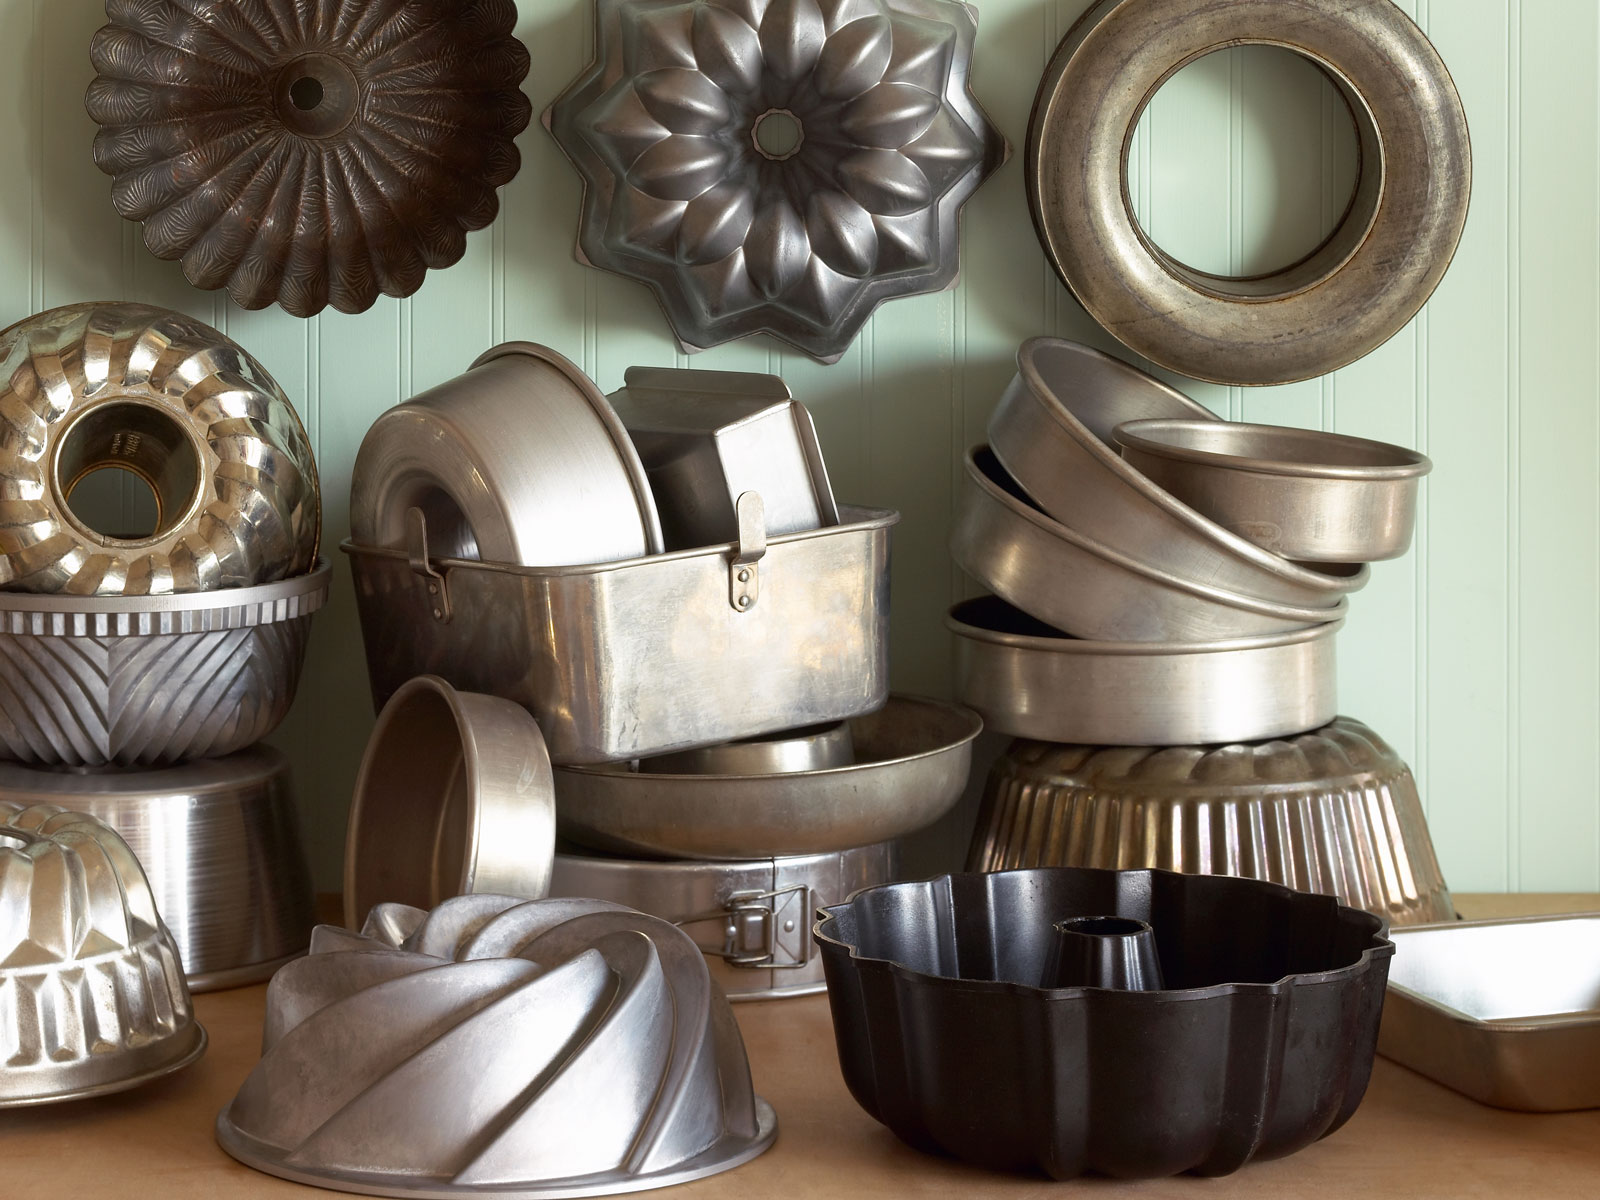 Need a Cake Pan? Check Your Local Library